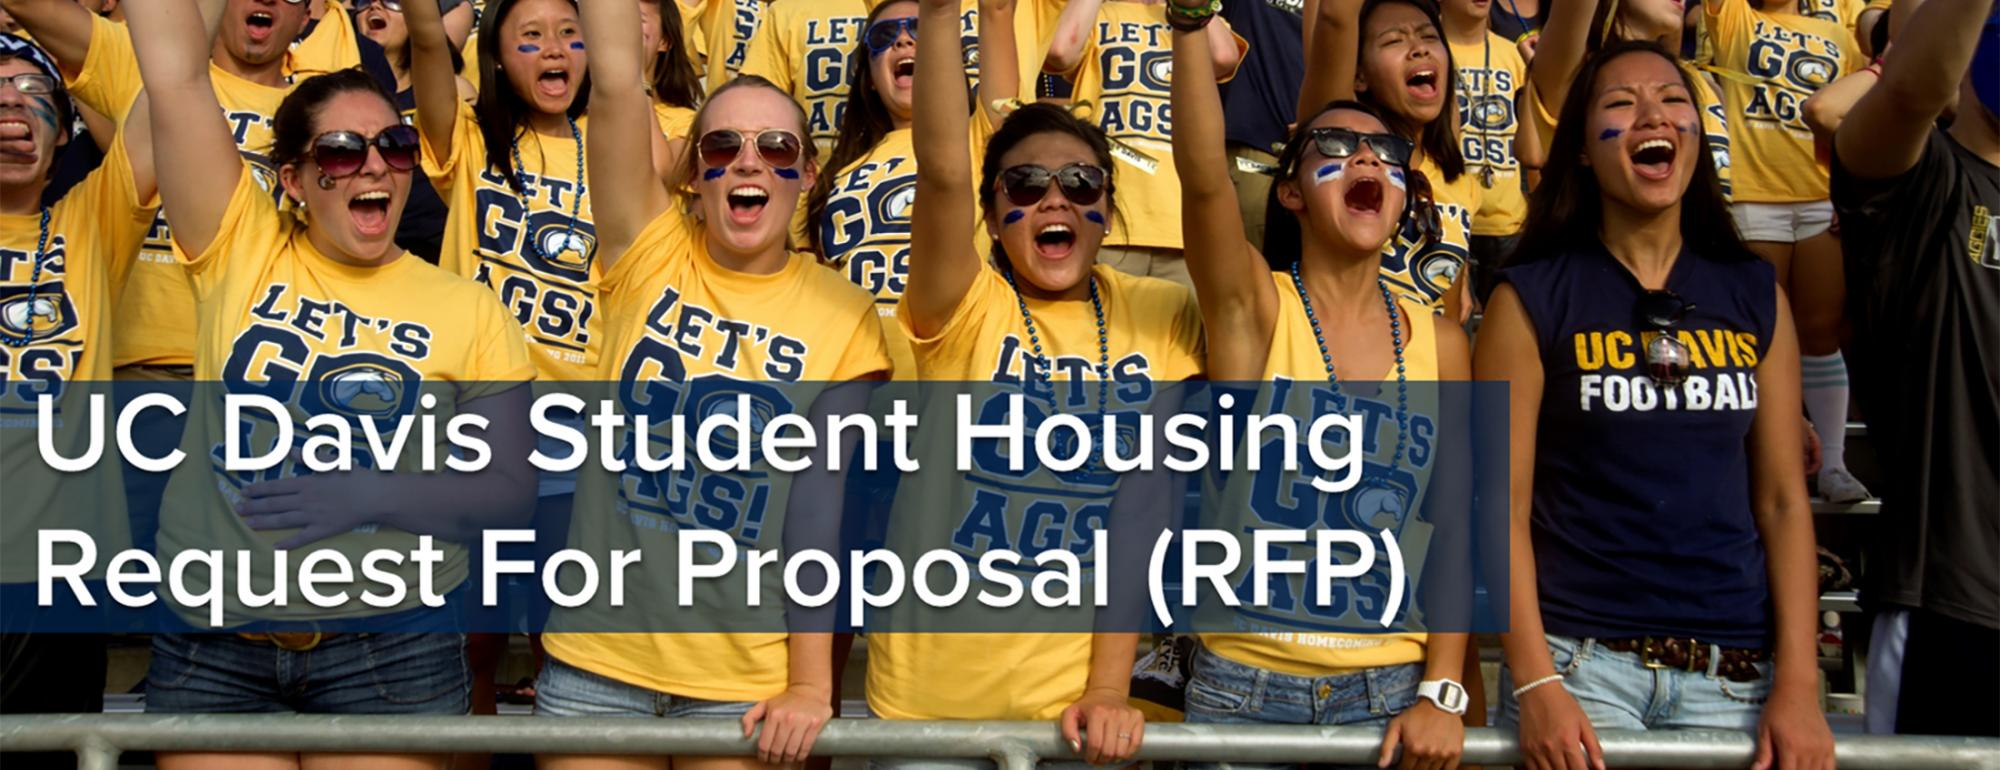 UC Davis Student Housing Request for Proposal